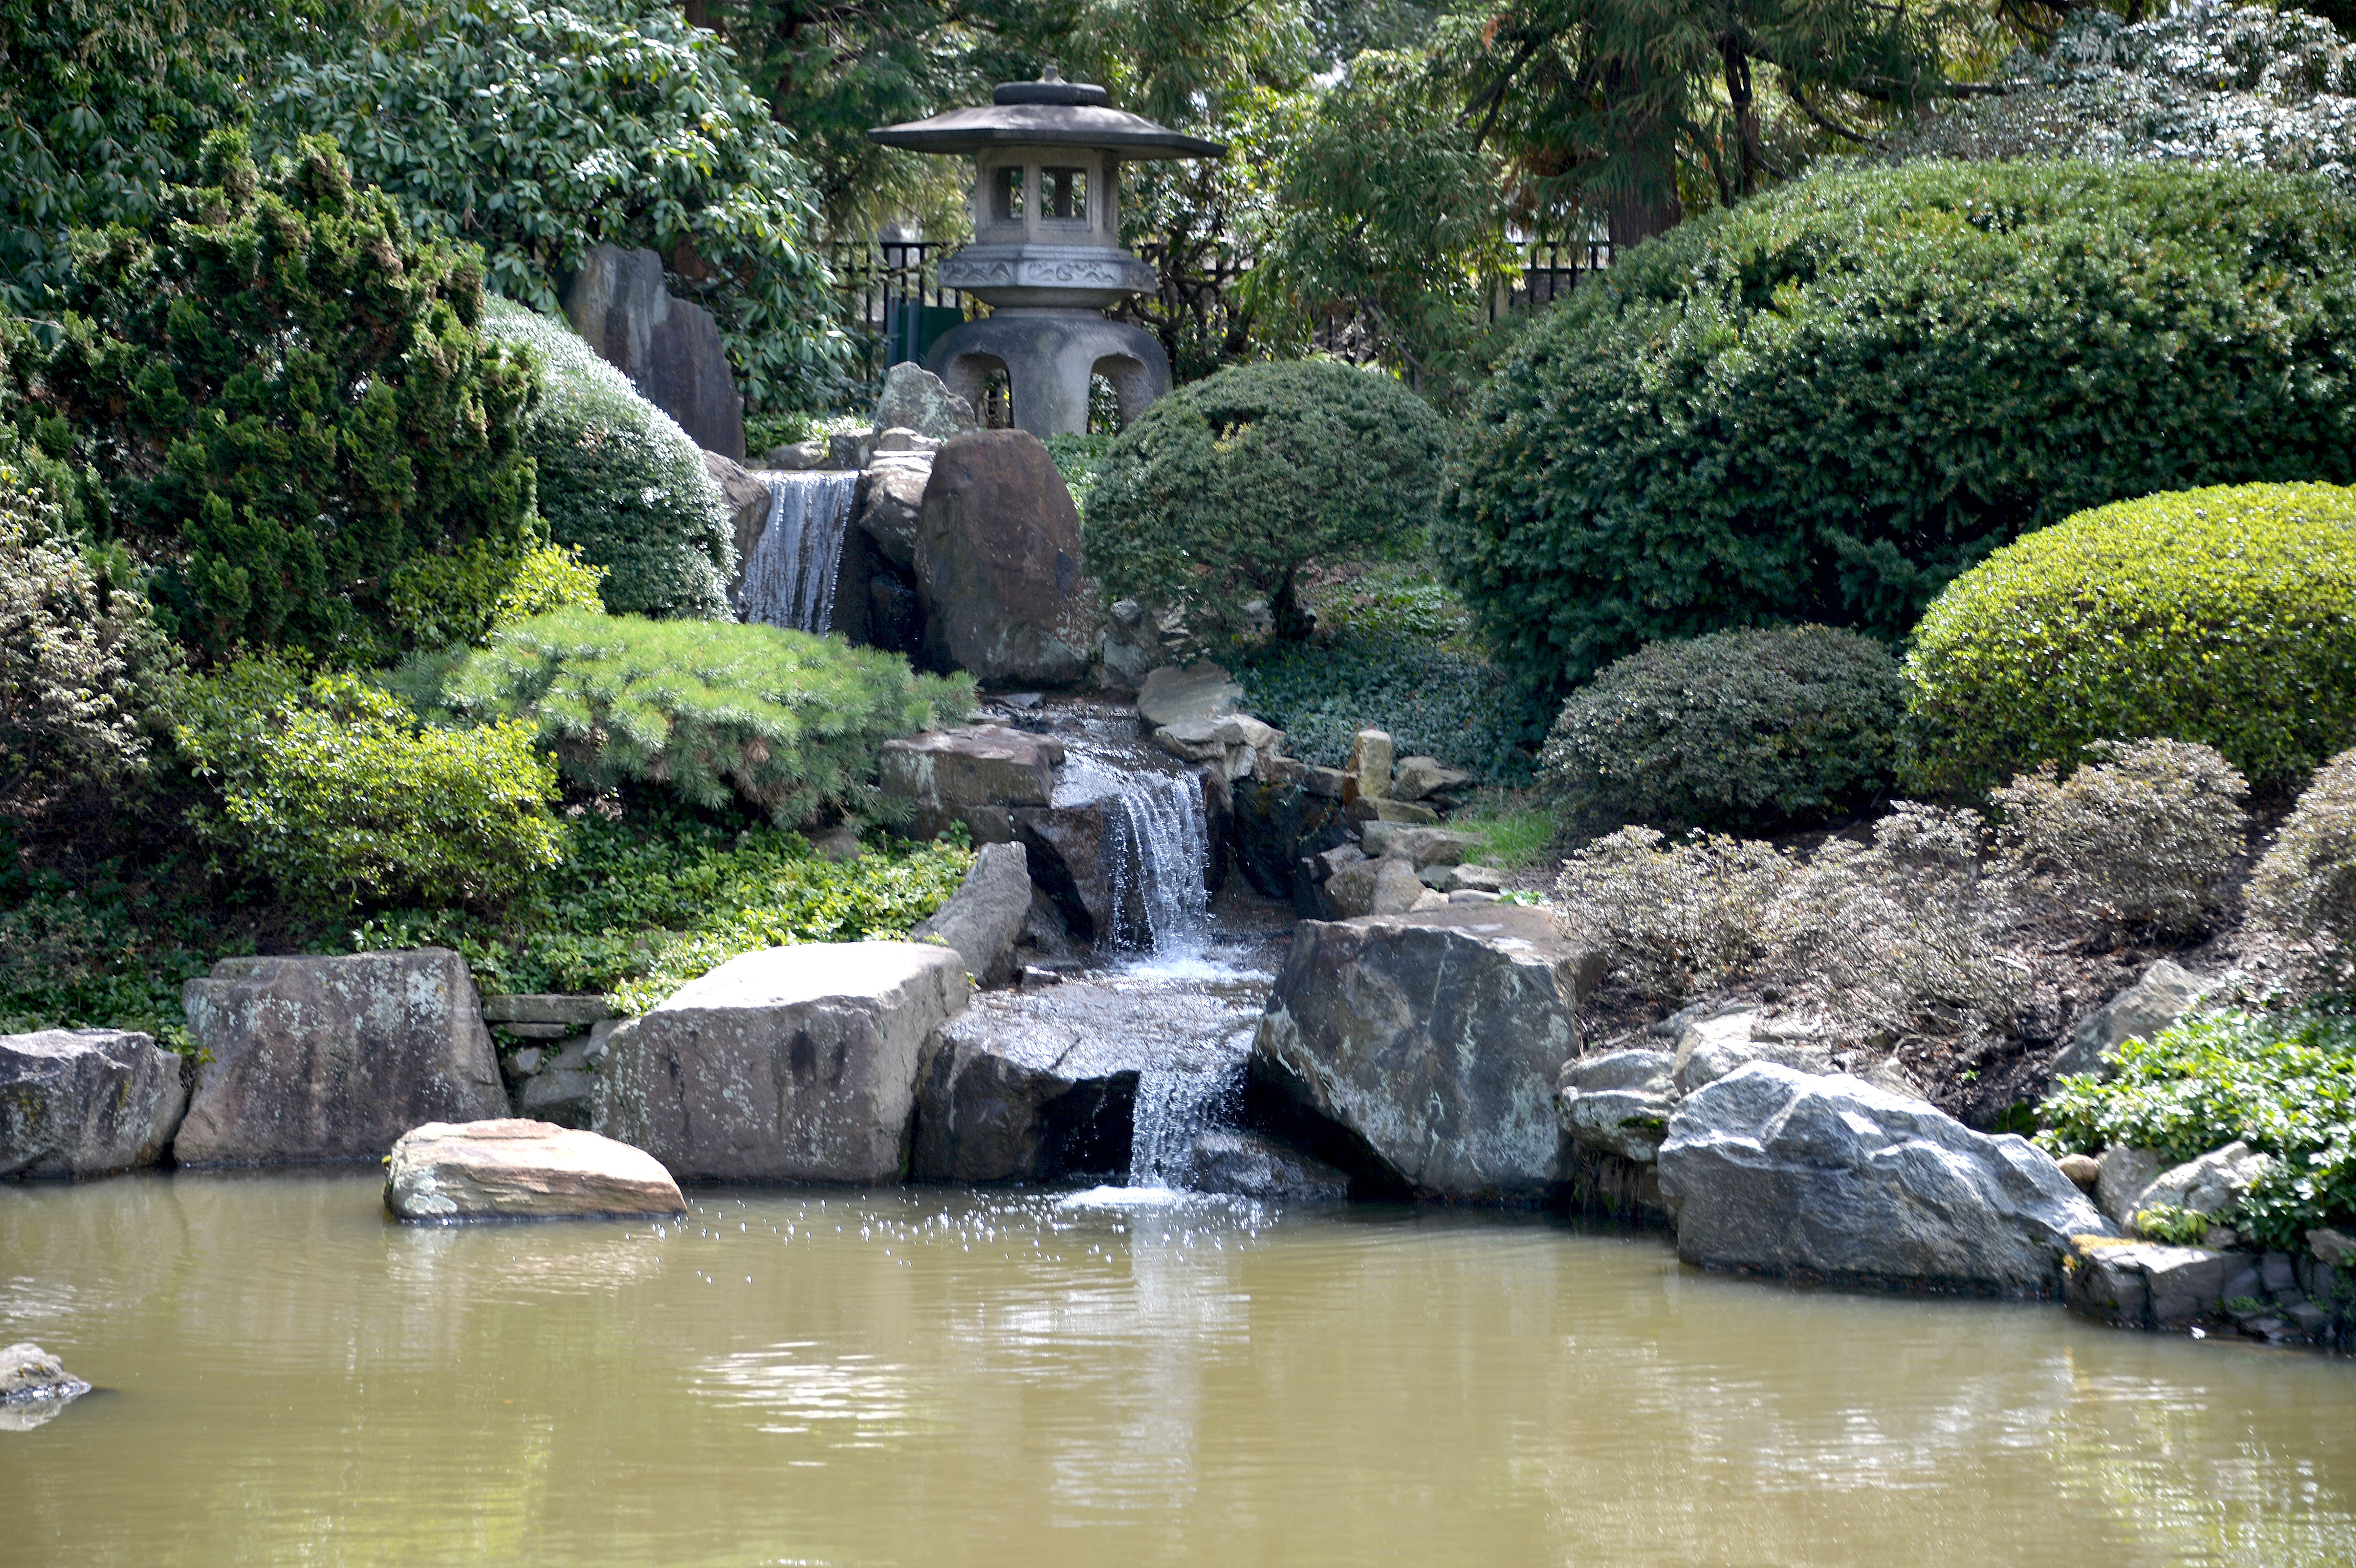 The Shofuso Japanese House And Garden (Photo Gallery)